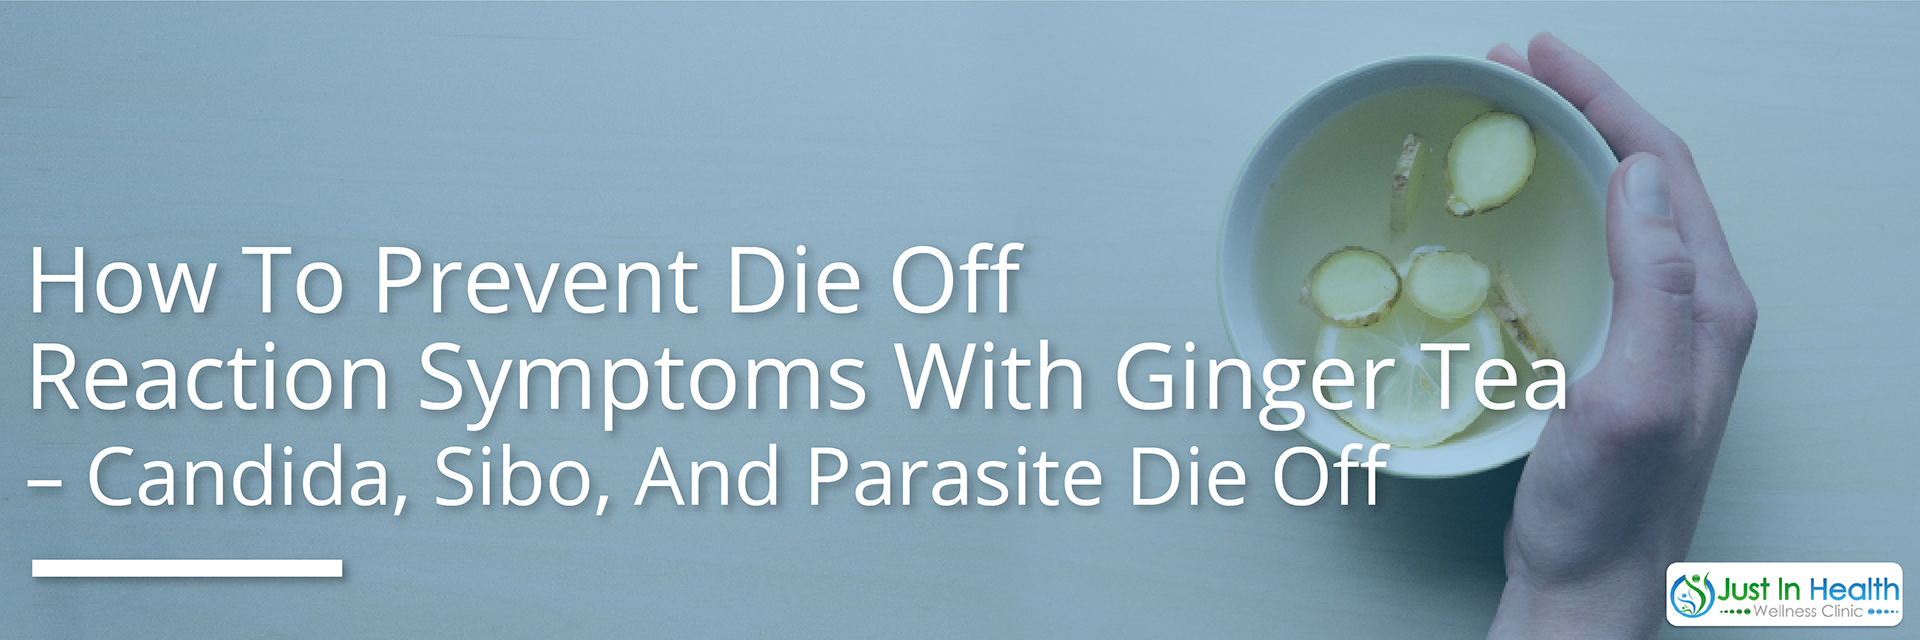 How to Prevent Die Off Reaction Symptoms With Ginger Tea